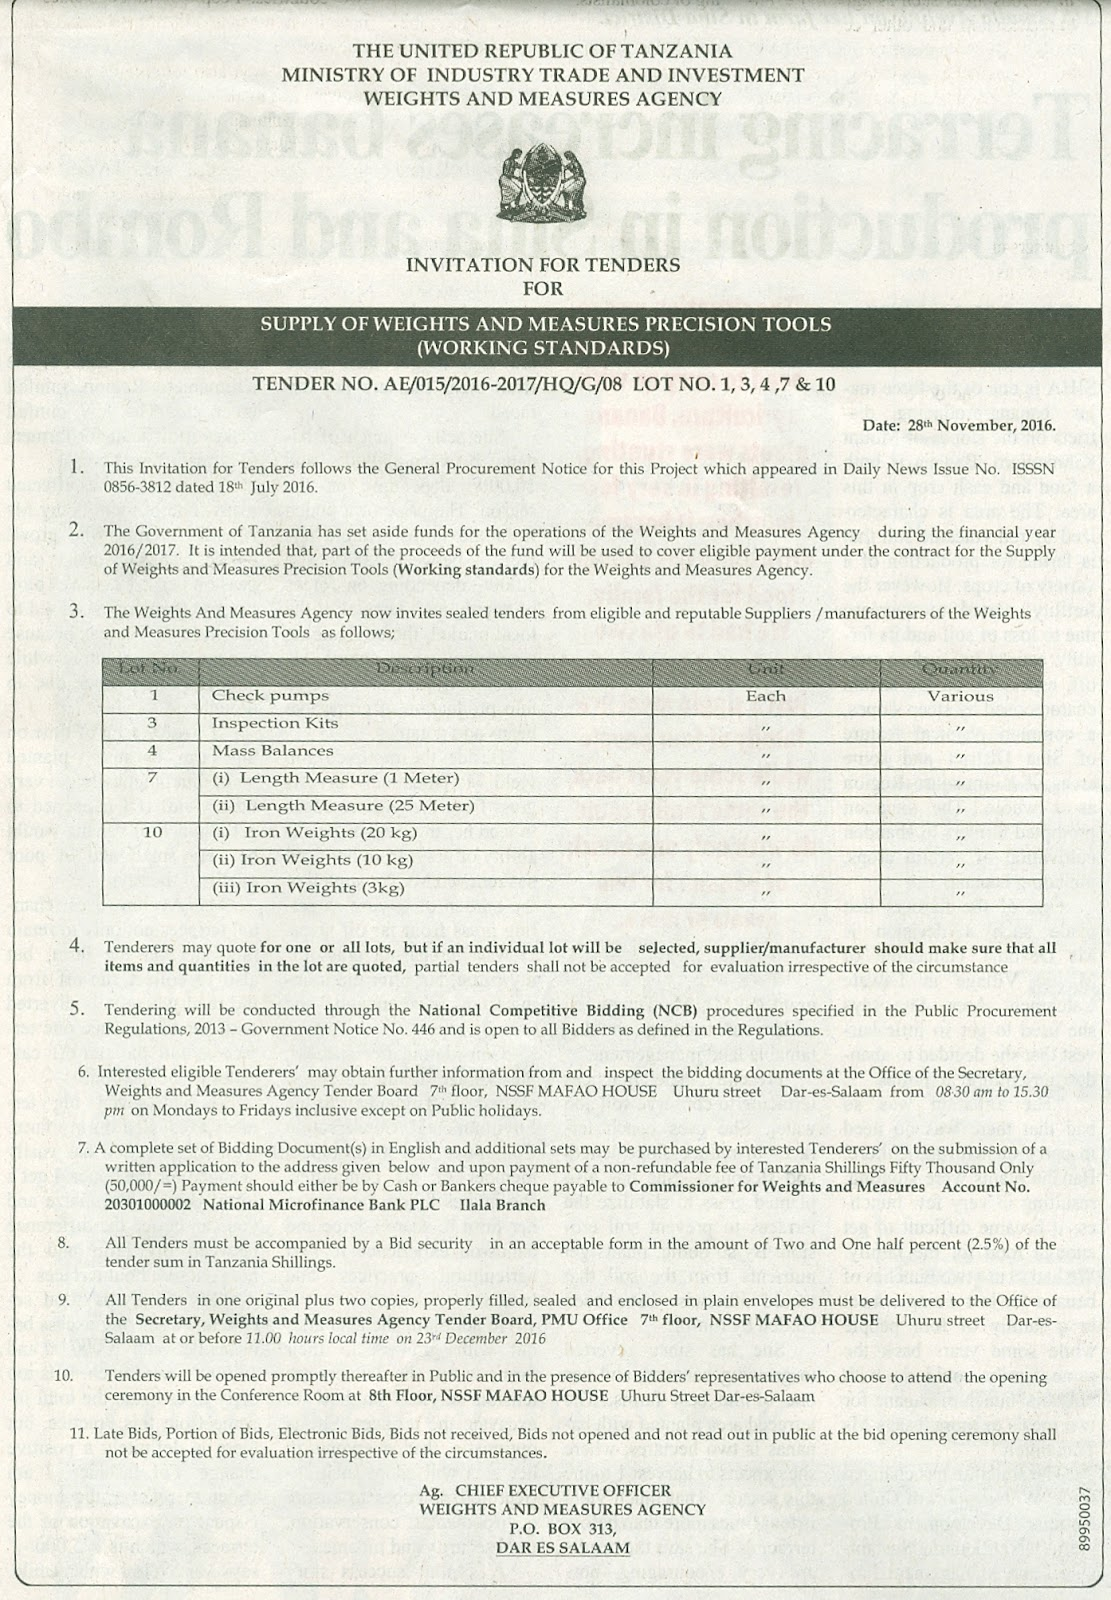 Invitation for tender ministry of industry trade and investment invitation for tender ministry of industry trade and investment stopboris Choice Image